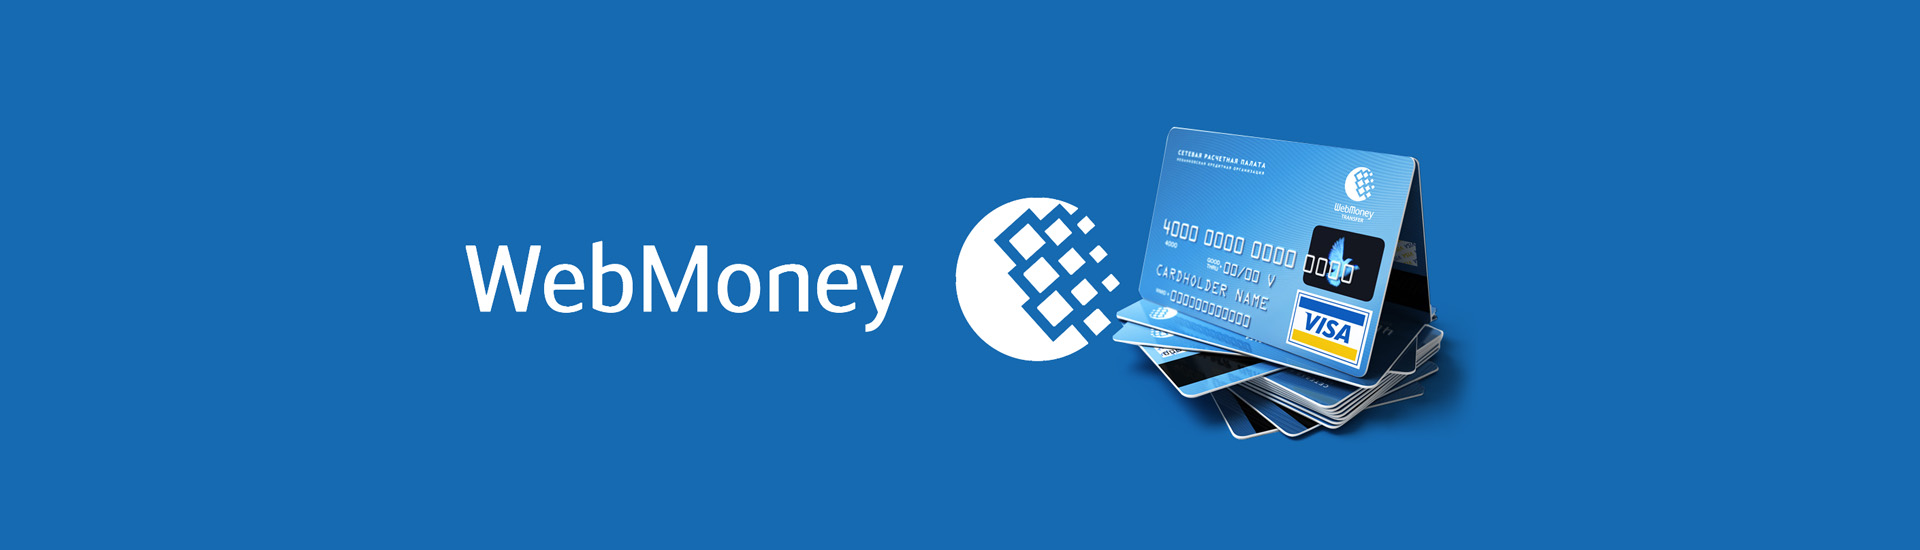 withdraw from ATM your perfectmoney, webmoney, bitcoin